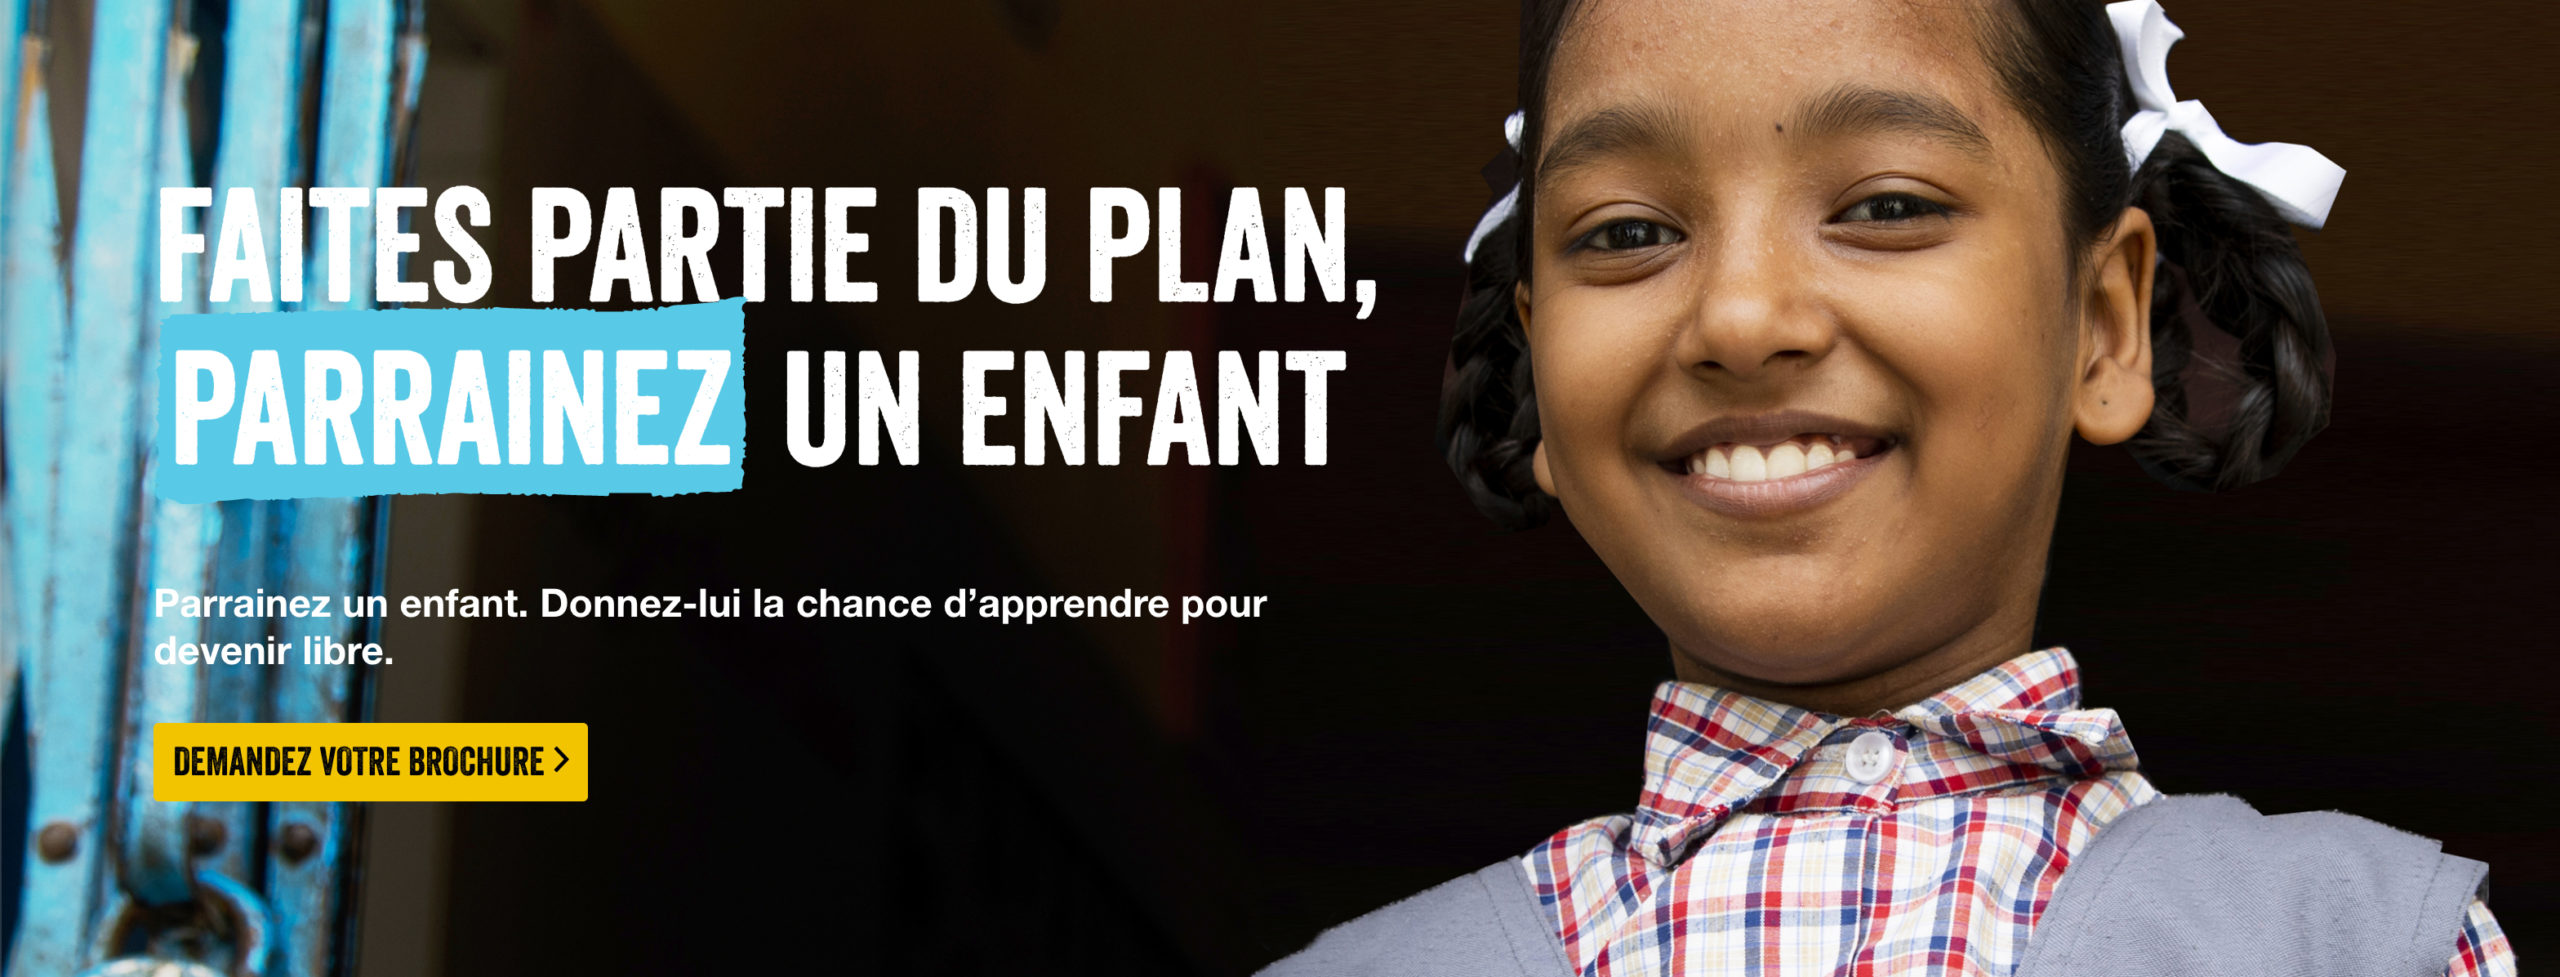 Wonder mum en a ras la cape - Plan International parrainer un enfant